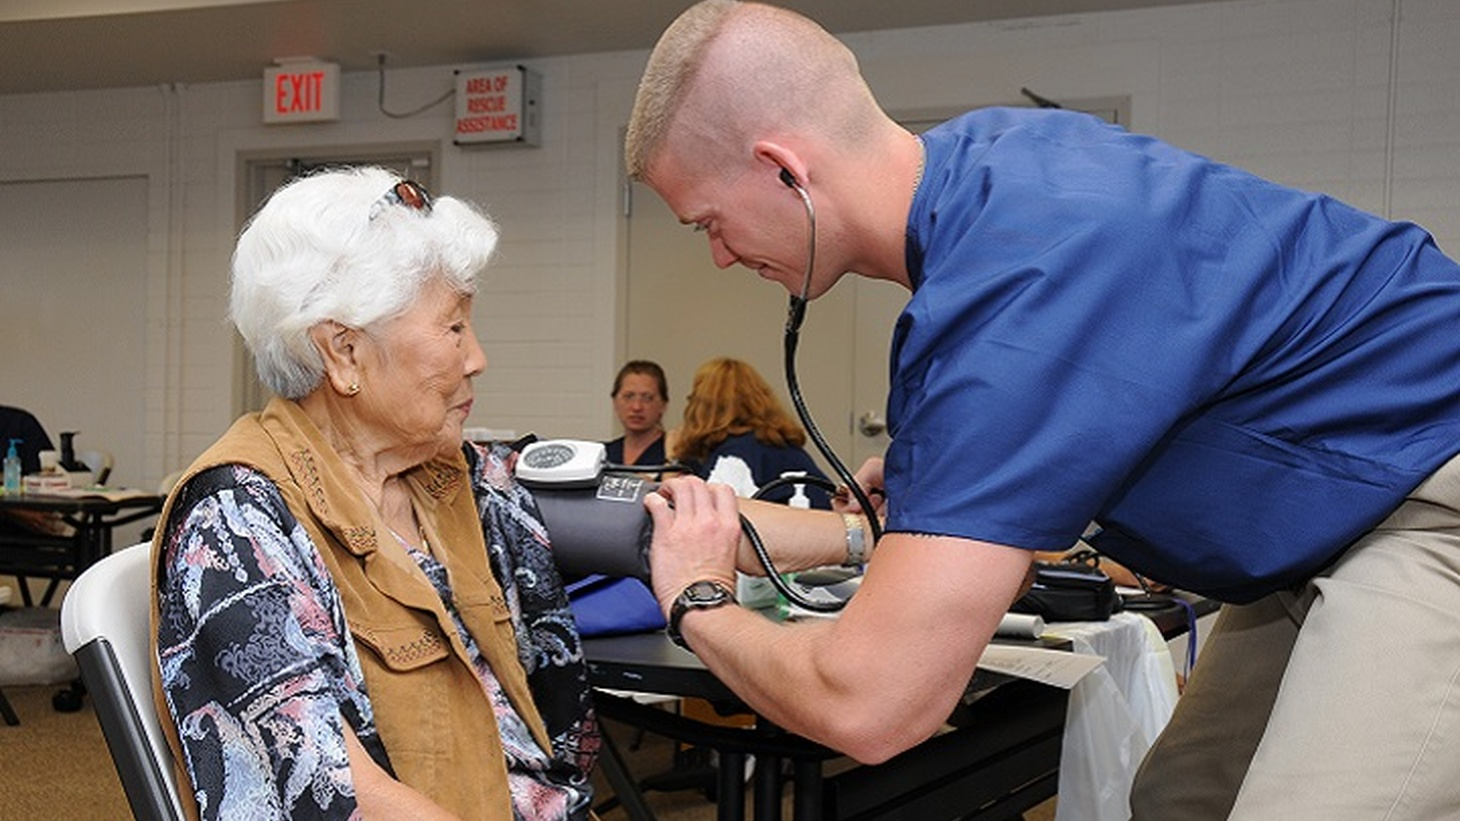 Air Force Staff Sgt. Nick Crouse, a medical technician with the 193rd Special Operations Wing's Medical Group out of Middletown, Pennsylvania, takes the blood pressure of a patient. Heart disease, diabetes, and chronic obstructive pulmonary disease are three ailments that take a huge toll on the body as it ages.